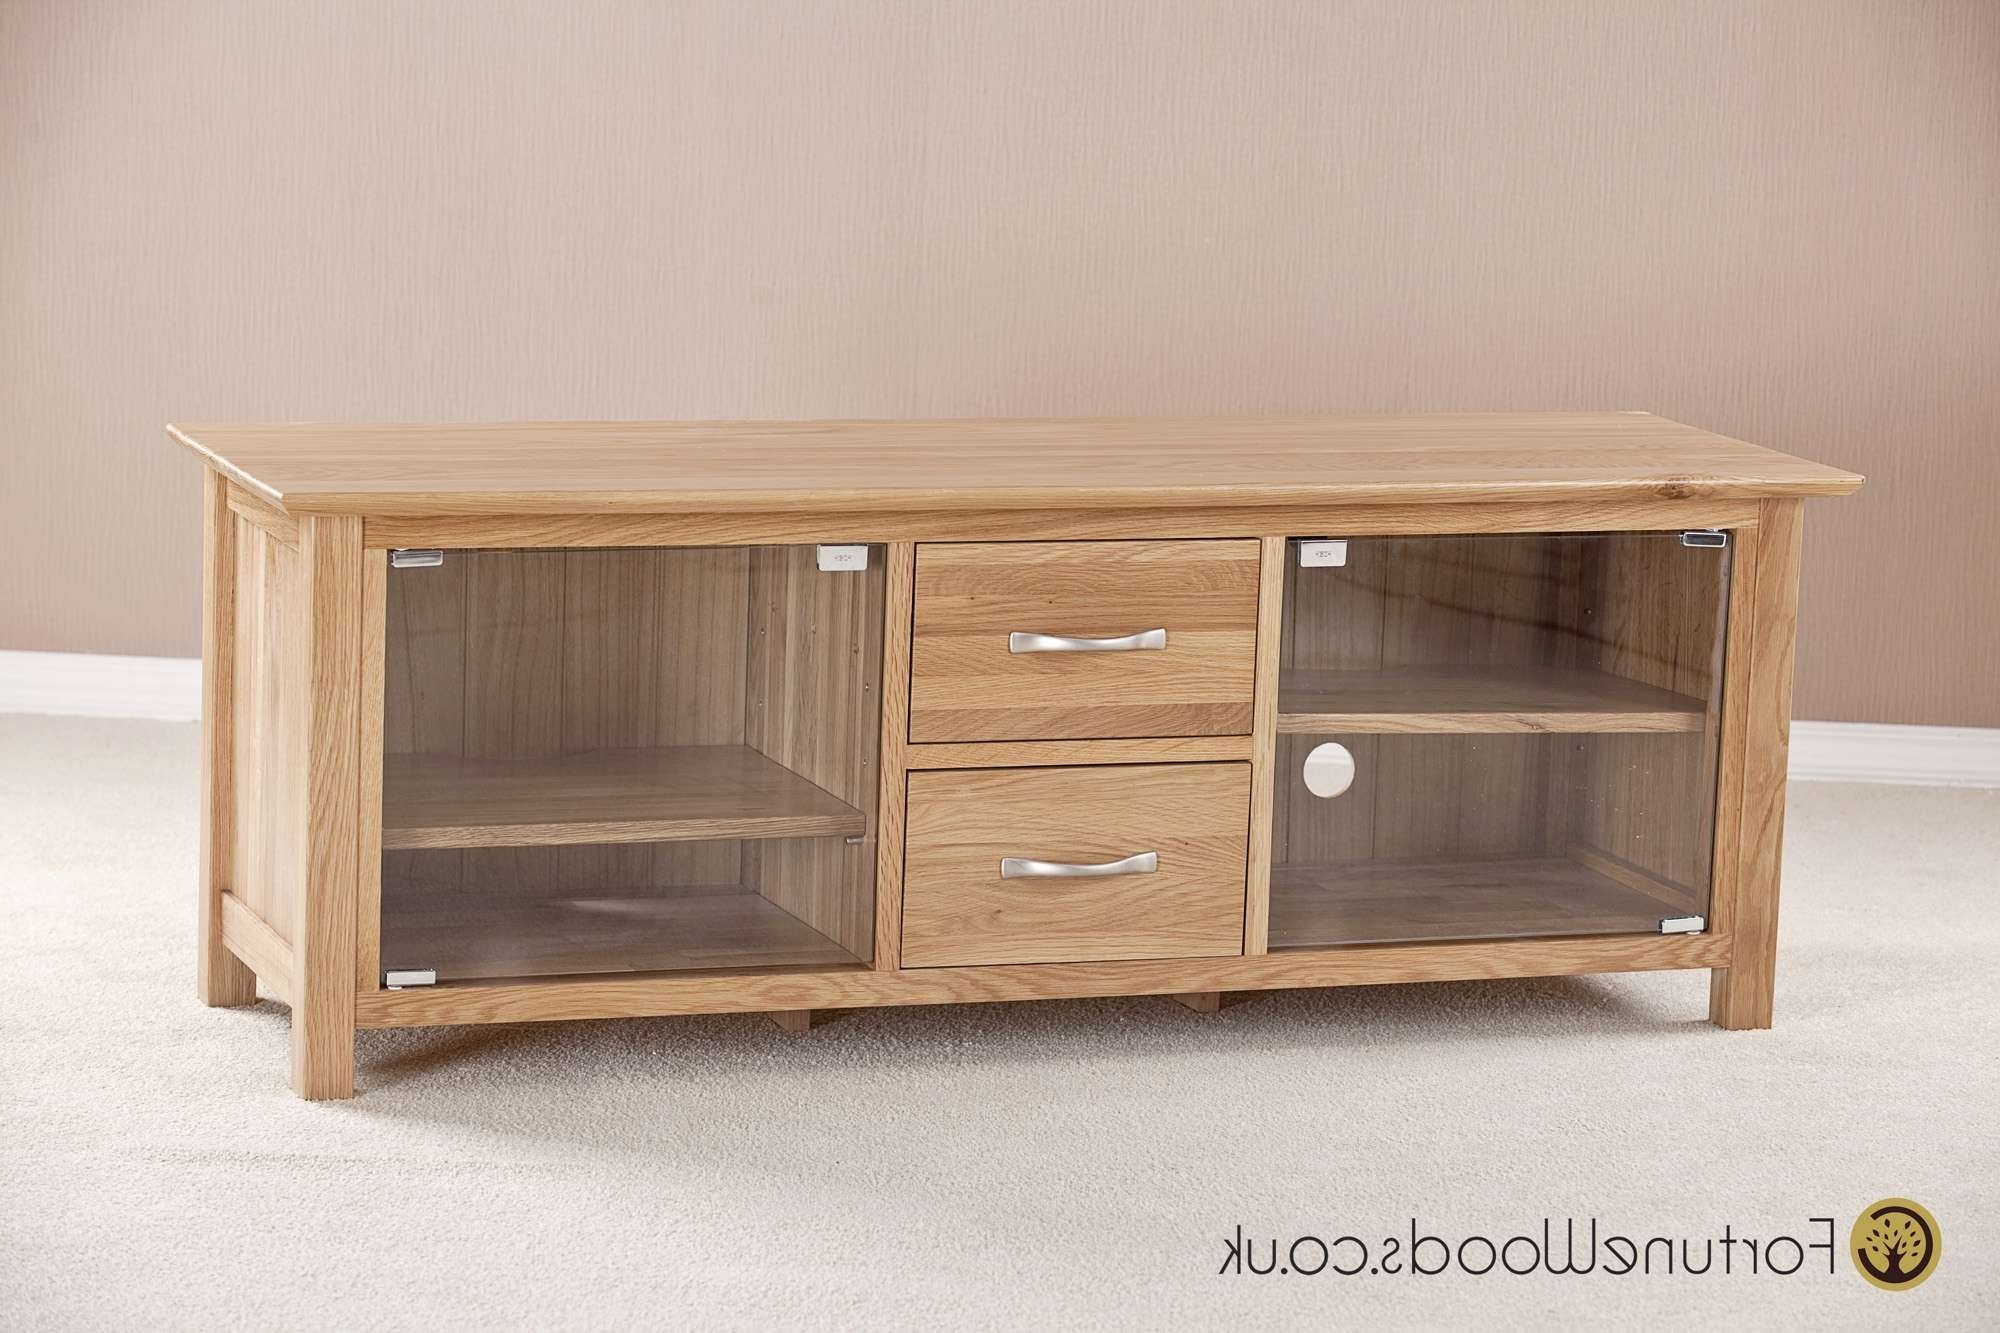 Large Oak Tv Unit With Glass Doors Intended For Sideboards With Glass Doors And Drawers (View 12 of 20)